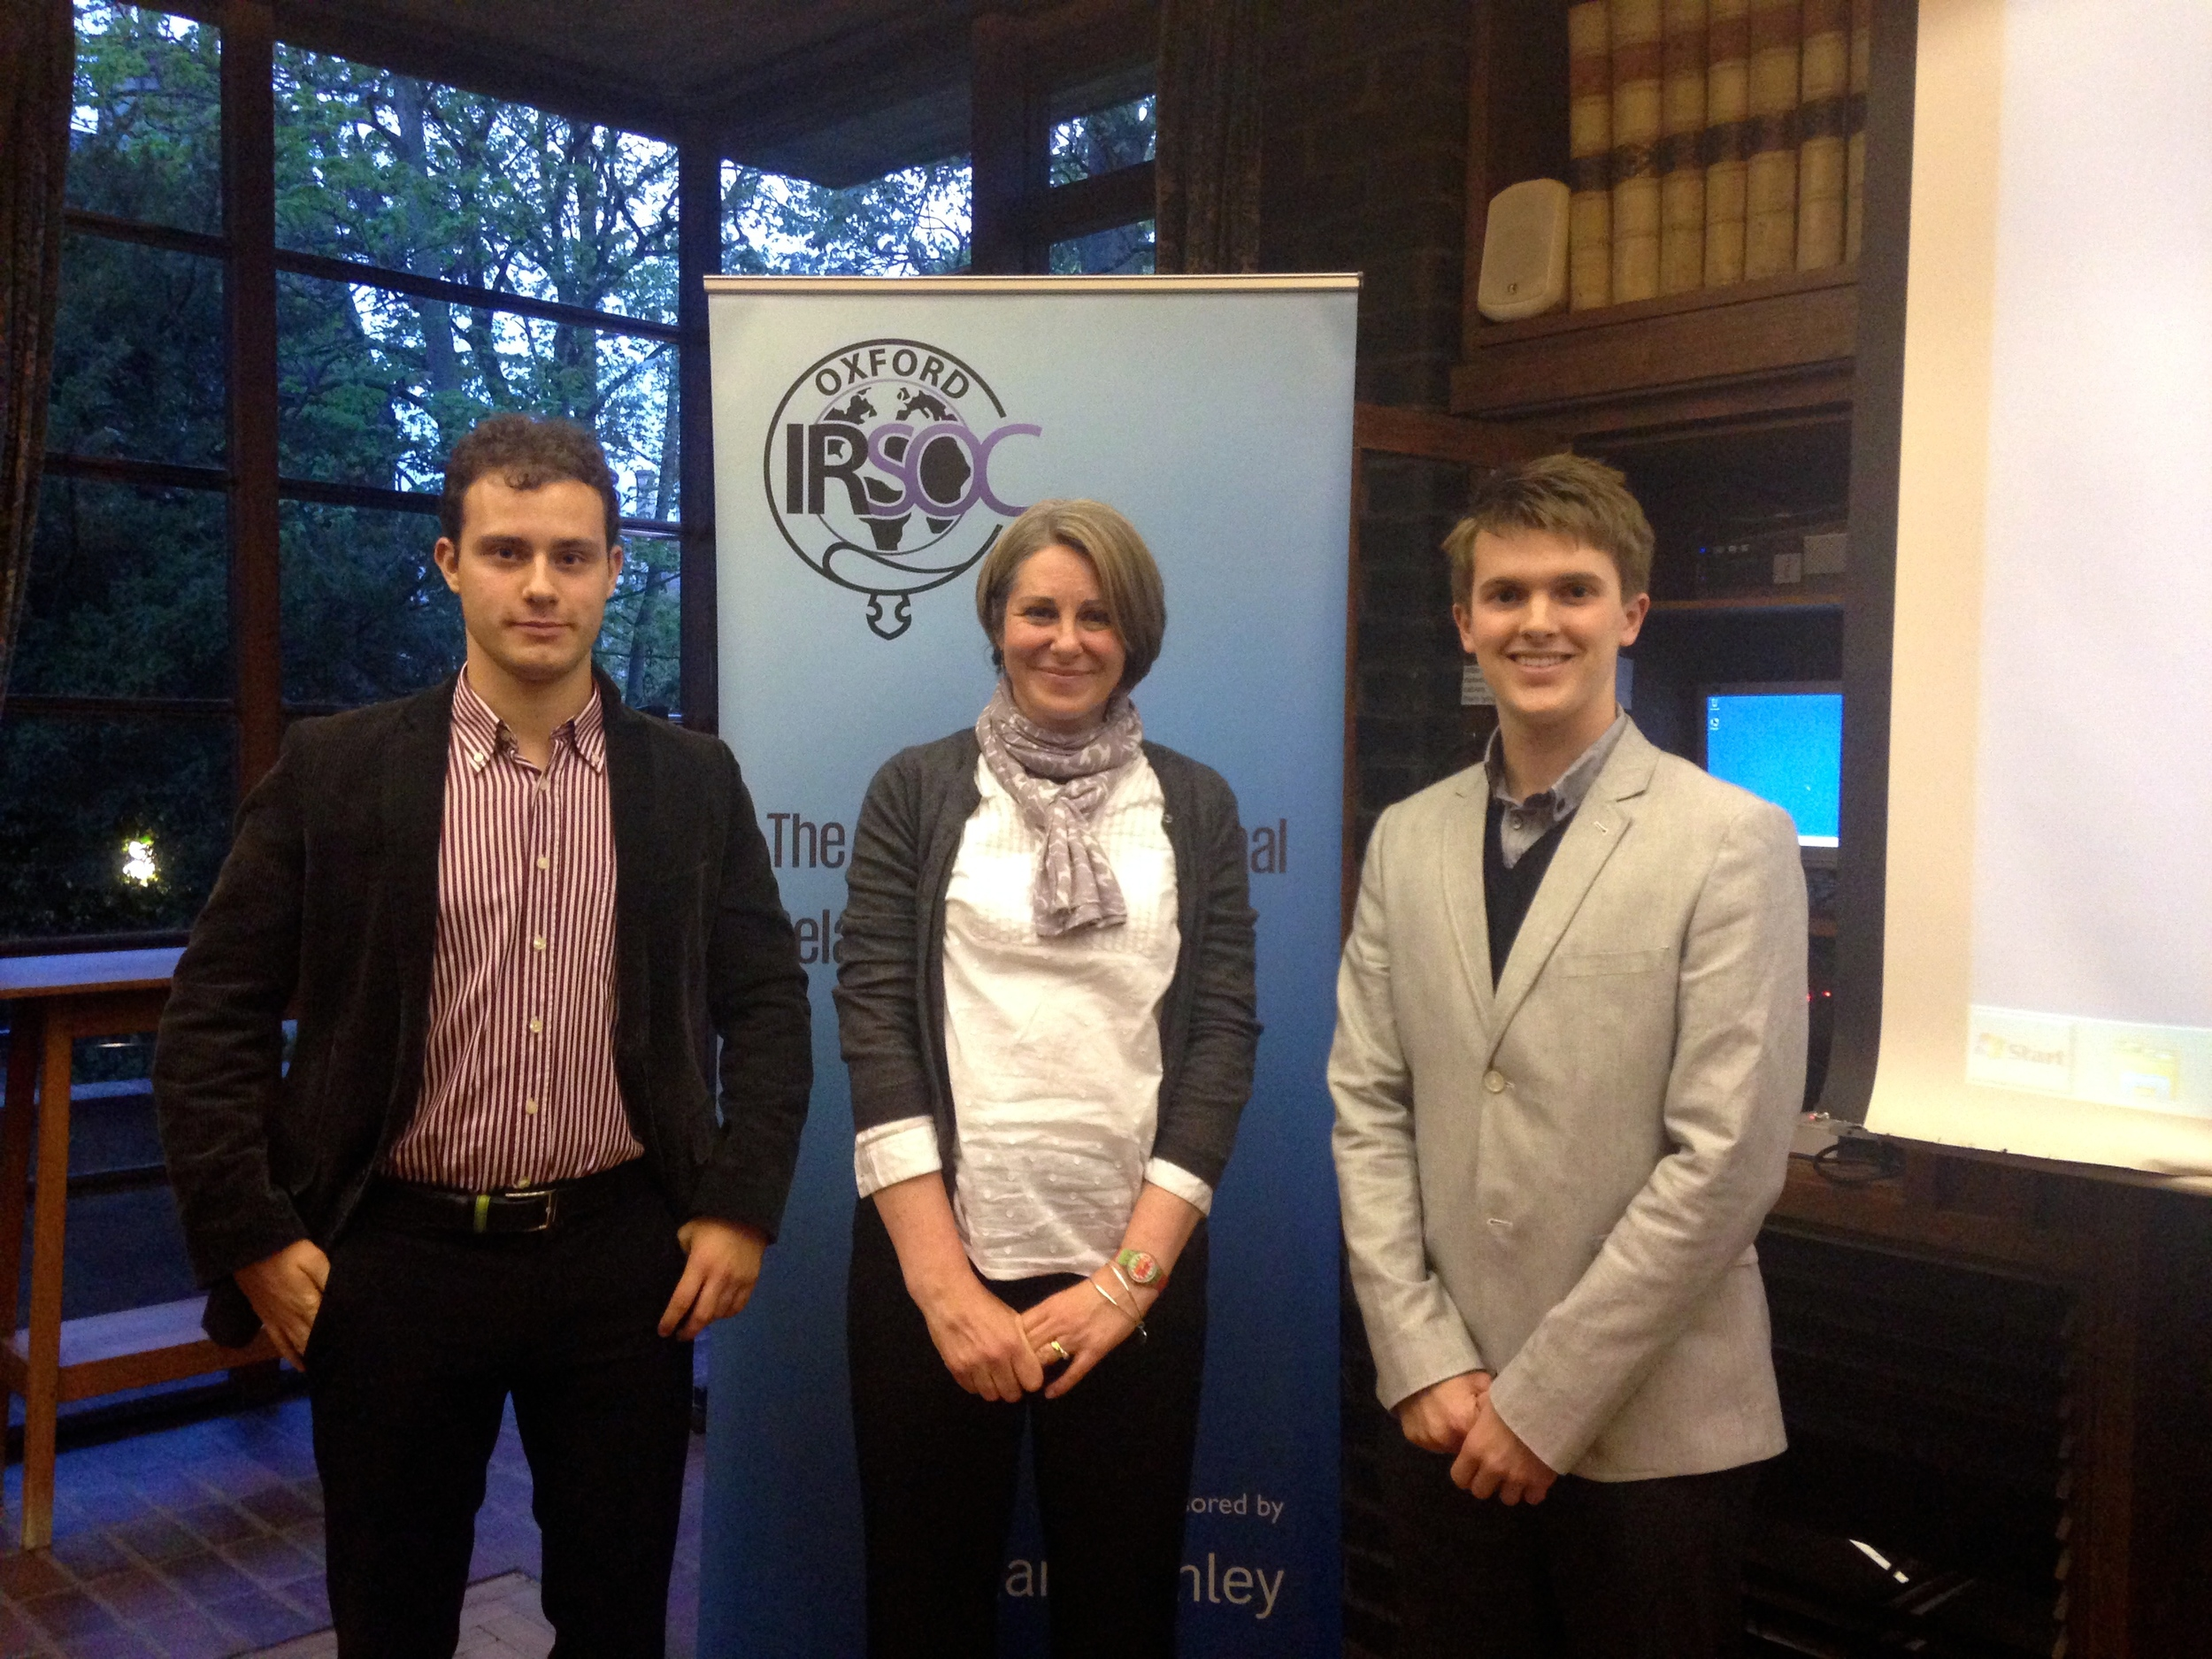 The President of OU European Affairs Society with Natalie Martin and Daniel Bayliss (President)